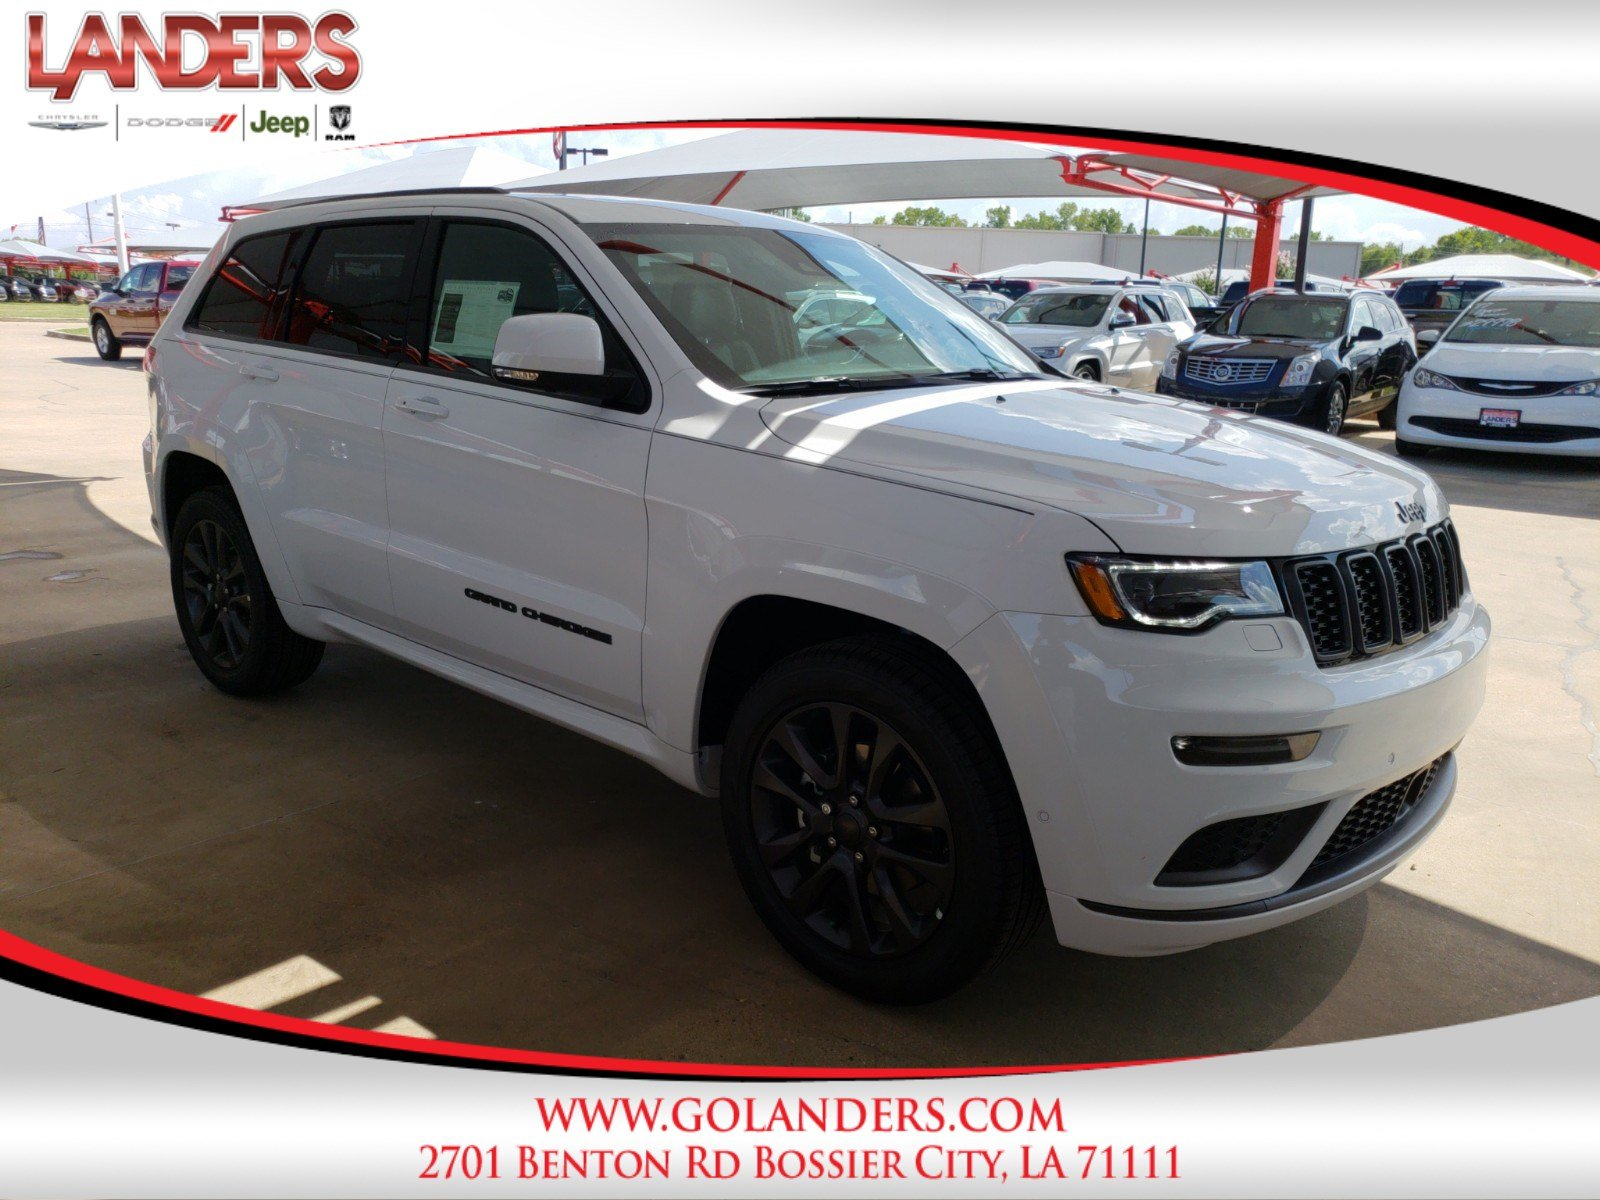 New 2018 Jeep Grand Cherokee High Altitude Sport Utility In Bossier 0 Dodge Dakota Custom Fit Vehicle Wiring Tow Ready